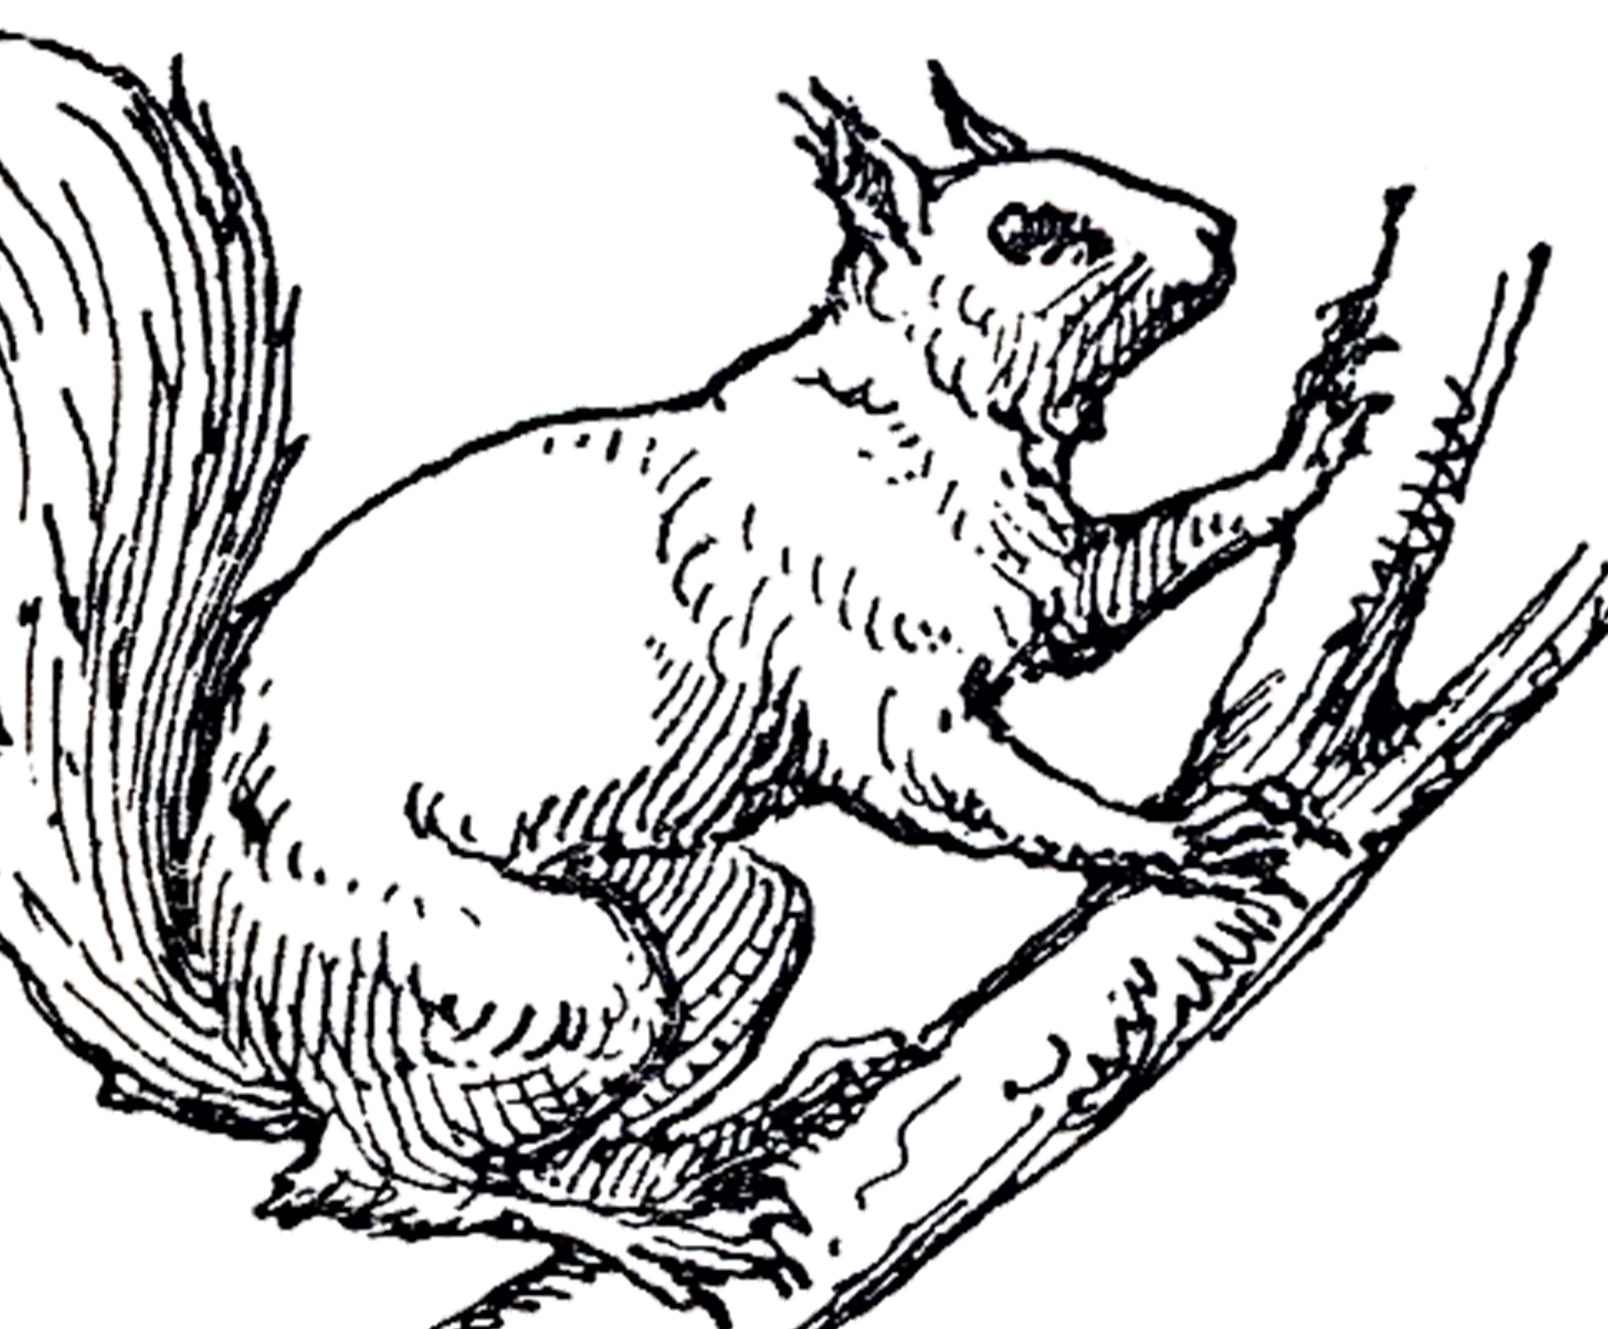 1608x1329 Vintage Squirrel Illustration Squirrel Illustration, Squirrel